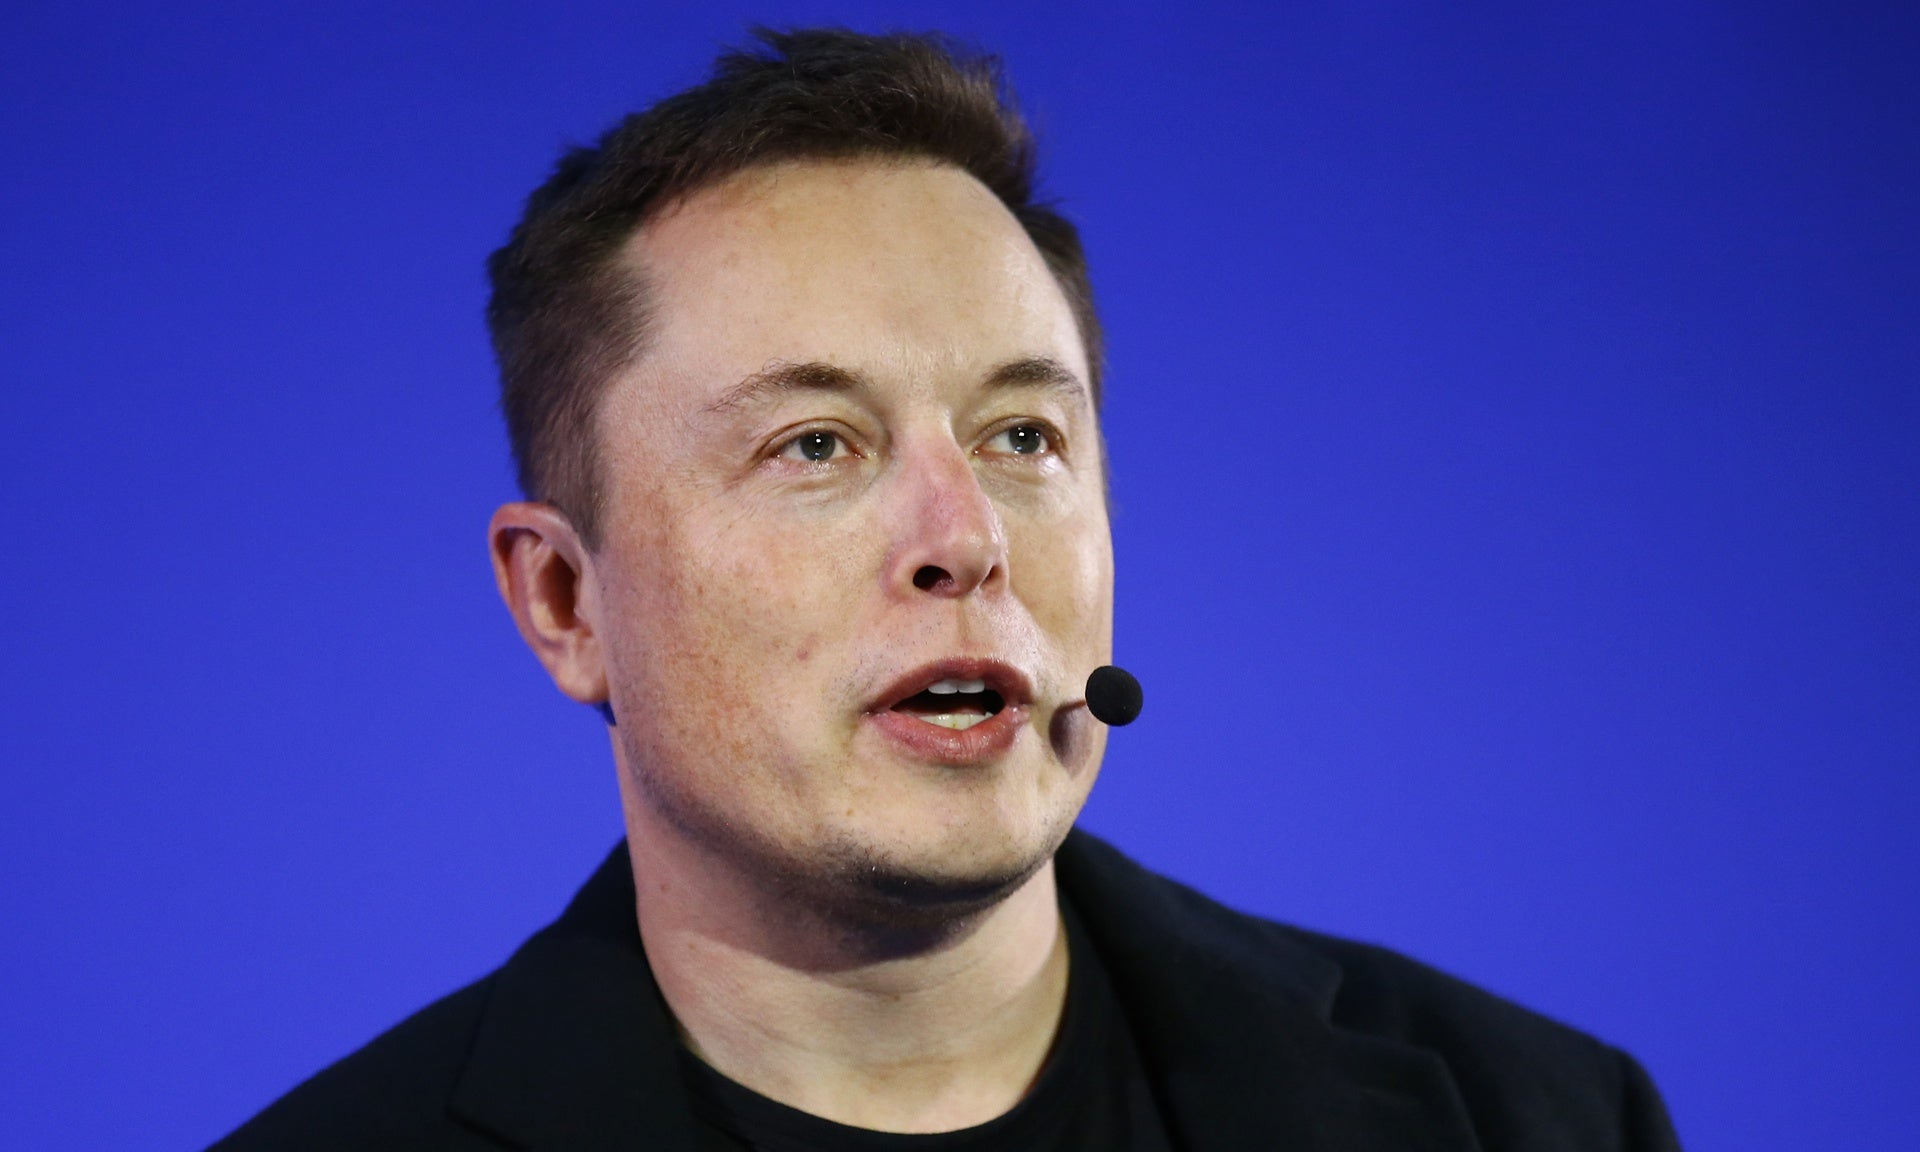 Musk's Plan to Save the World From Dangerous AI: Develop Advanced AI